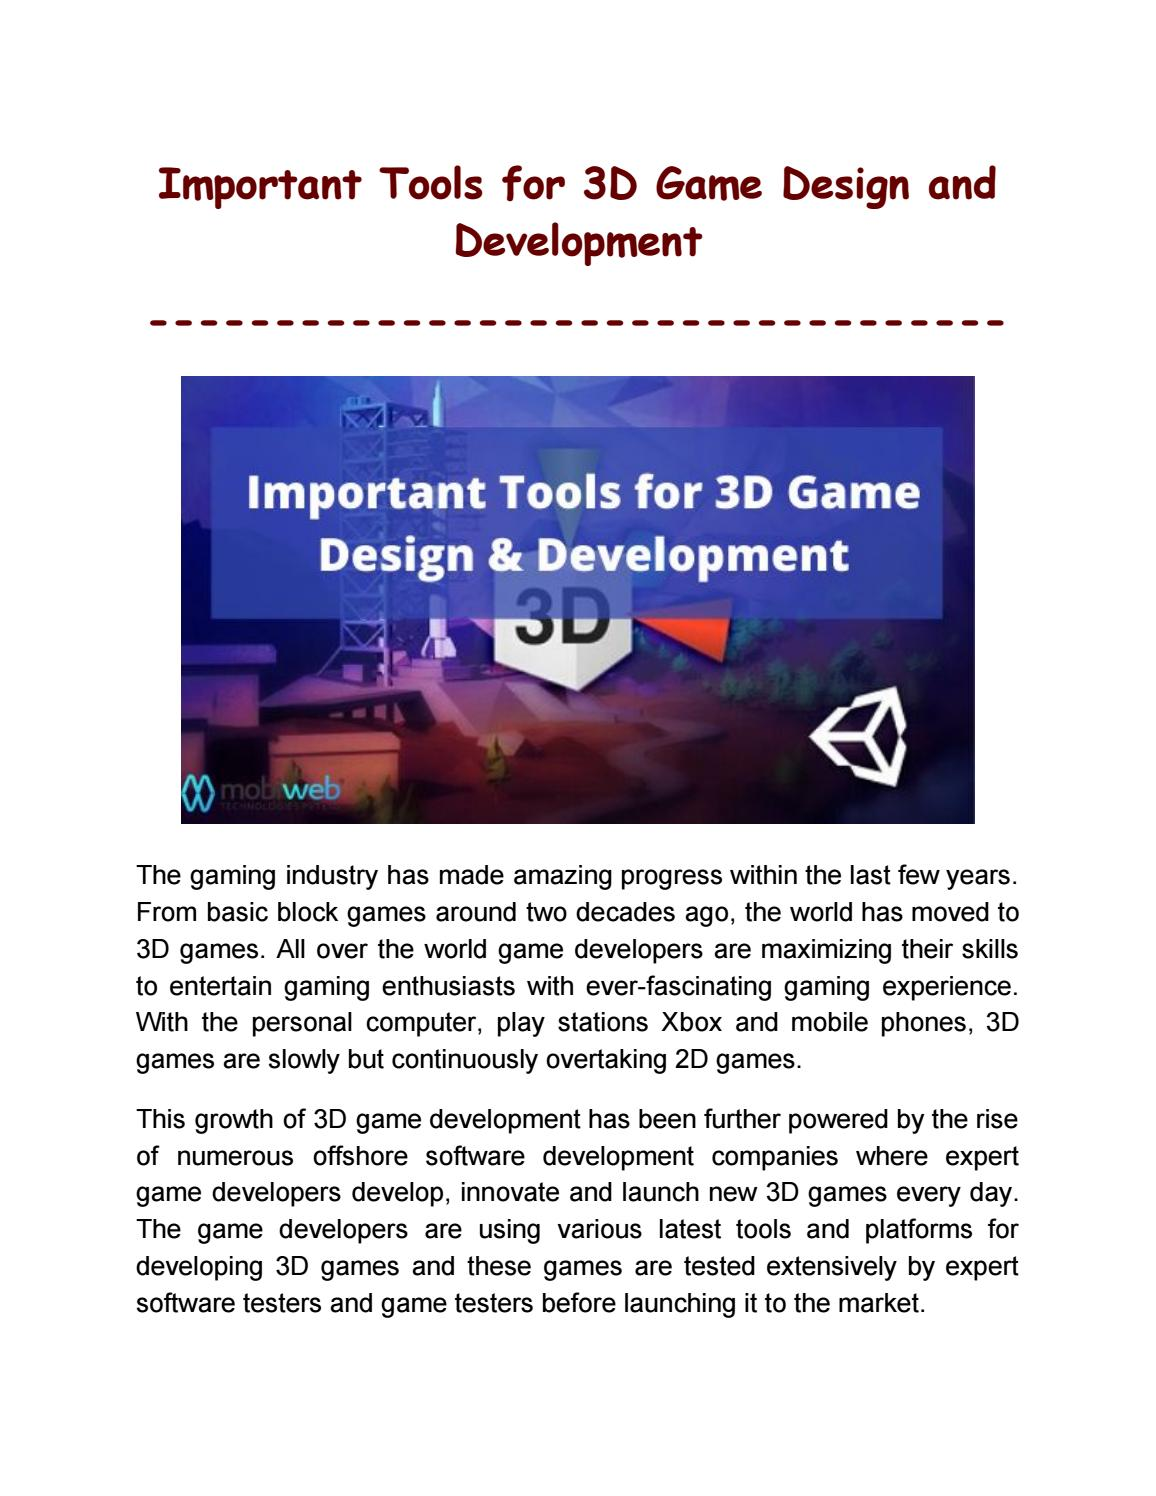 Most Essential Tools for 3D Game Design and Development